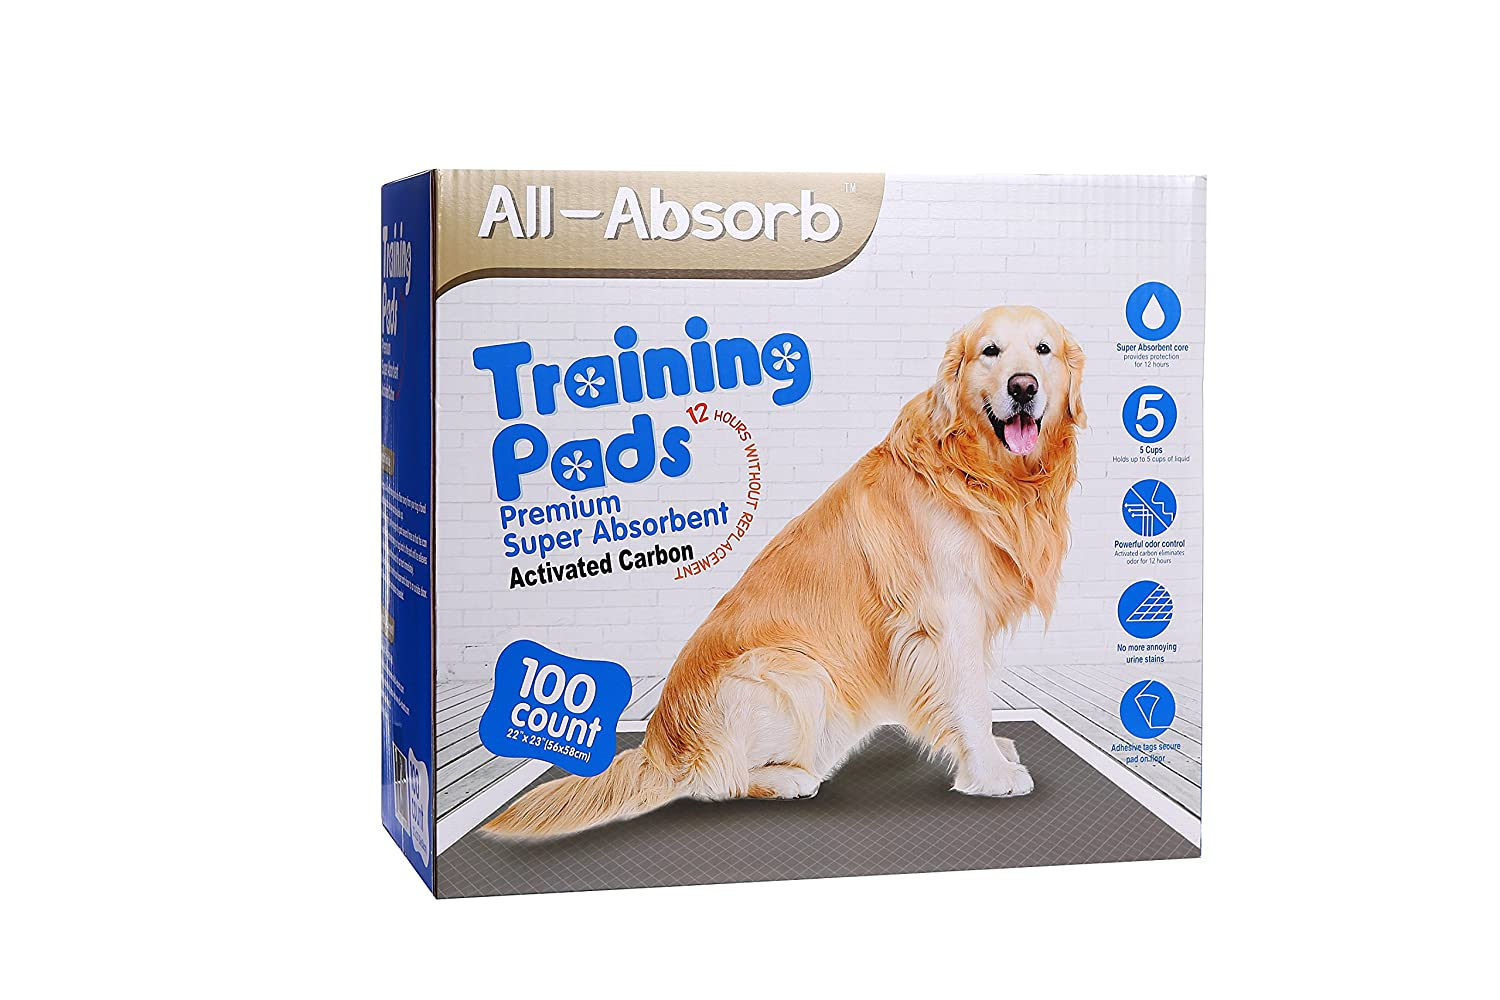 All-Absorb Premium Training Pads, Activated Carbon, 22-in by 23 , 100Count